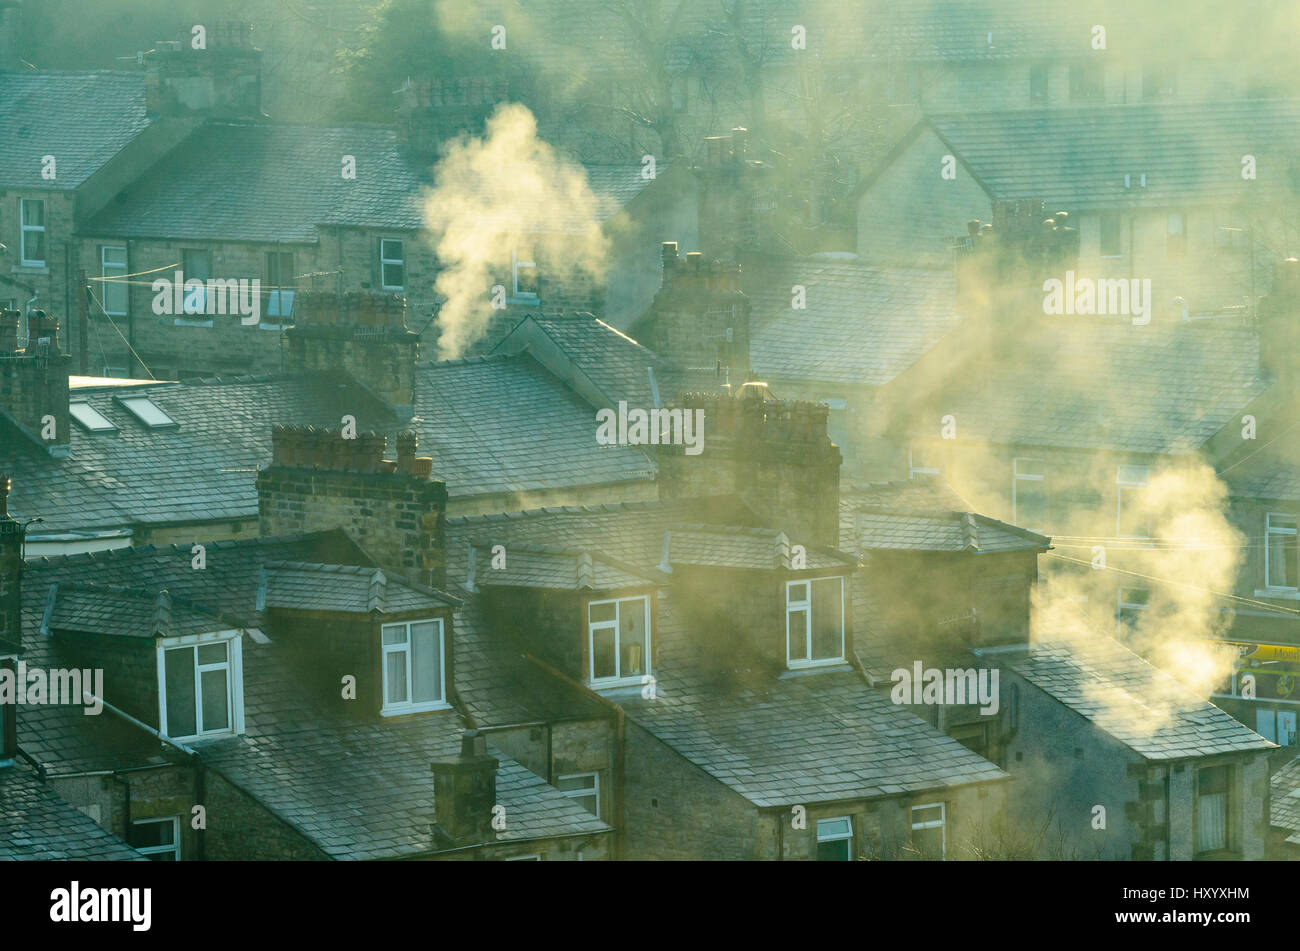 Smoking chimneys in the Moorlands area of Lancaster Lancashire England - Stock Image